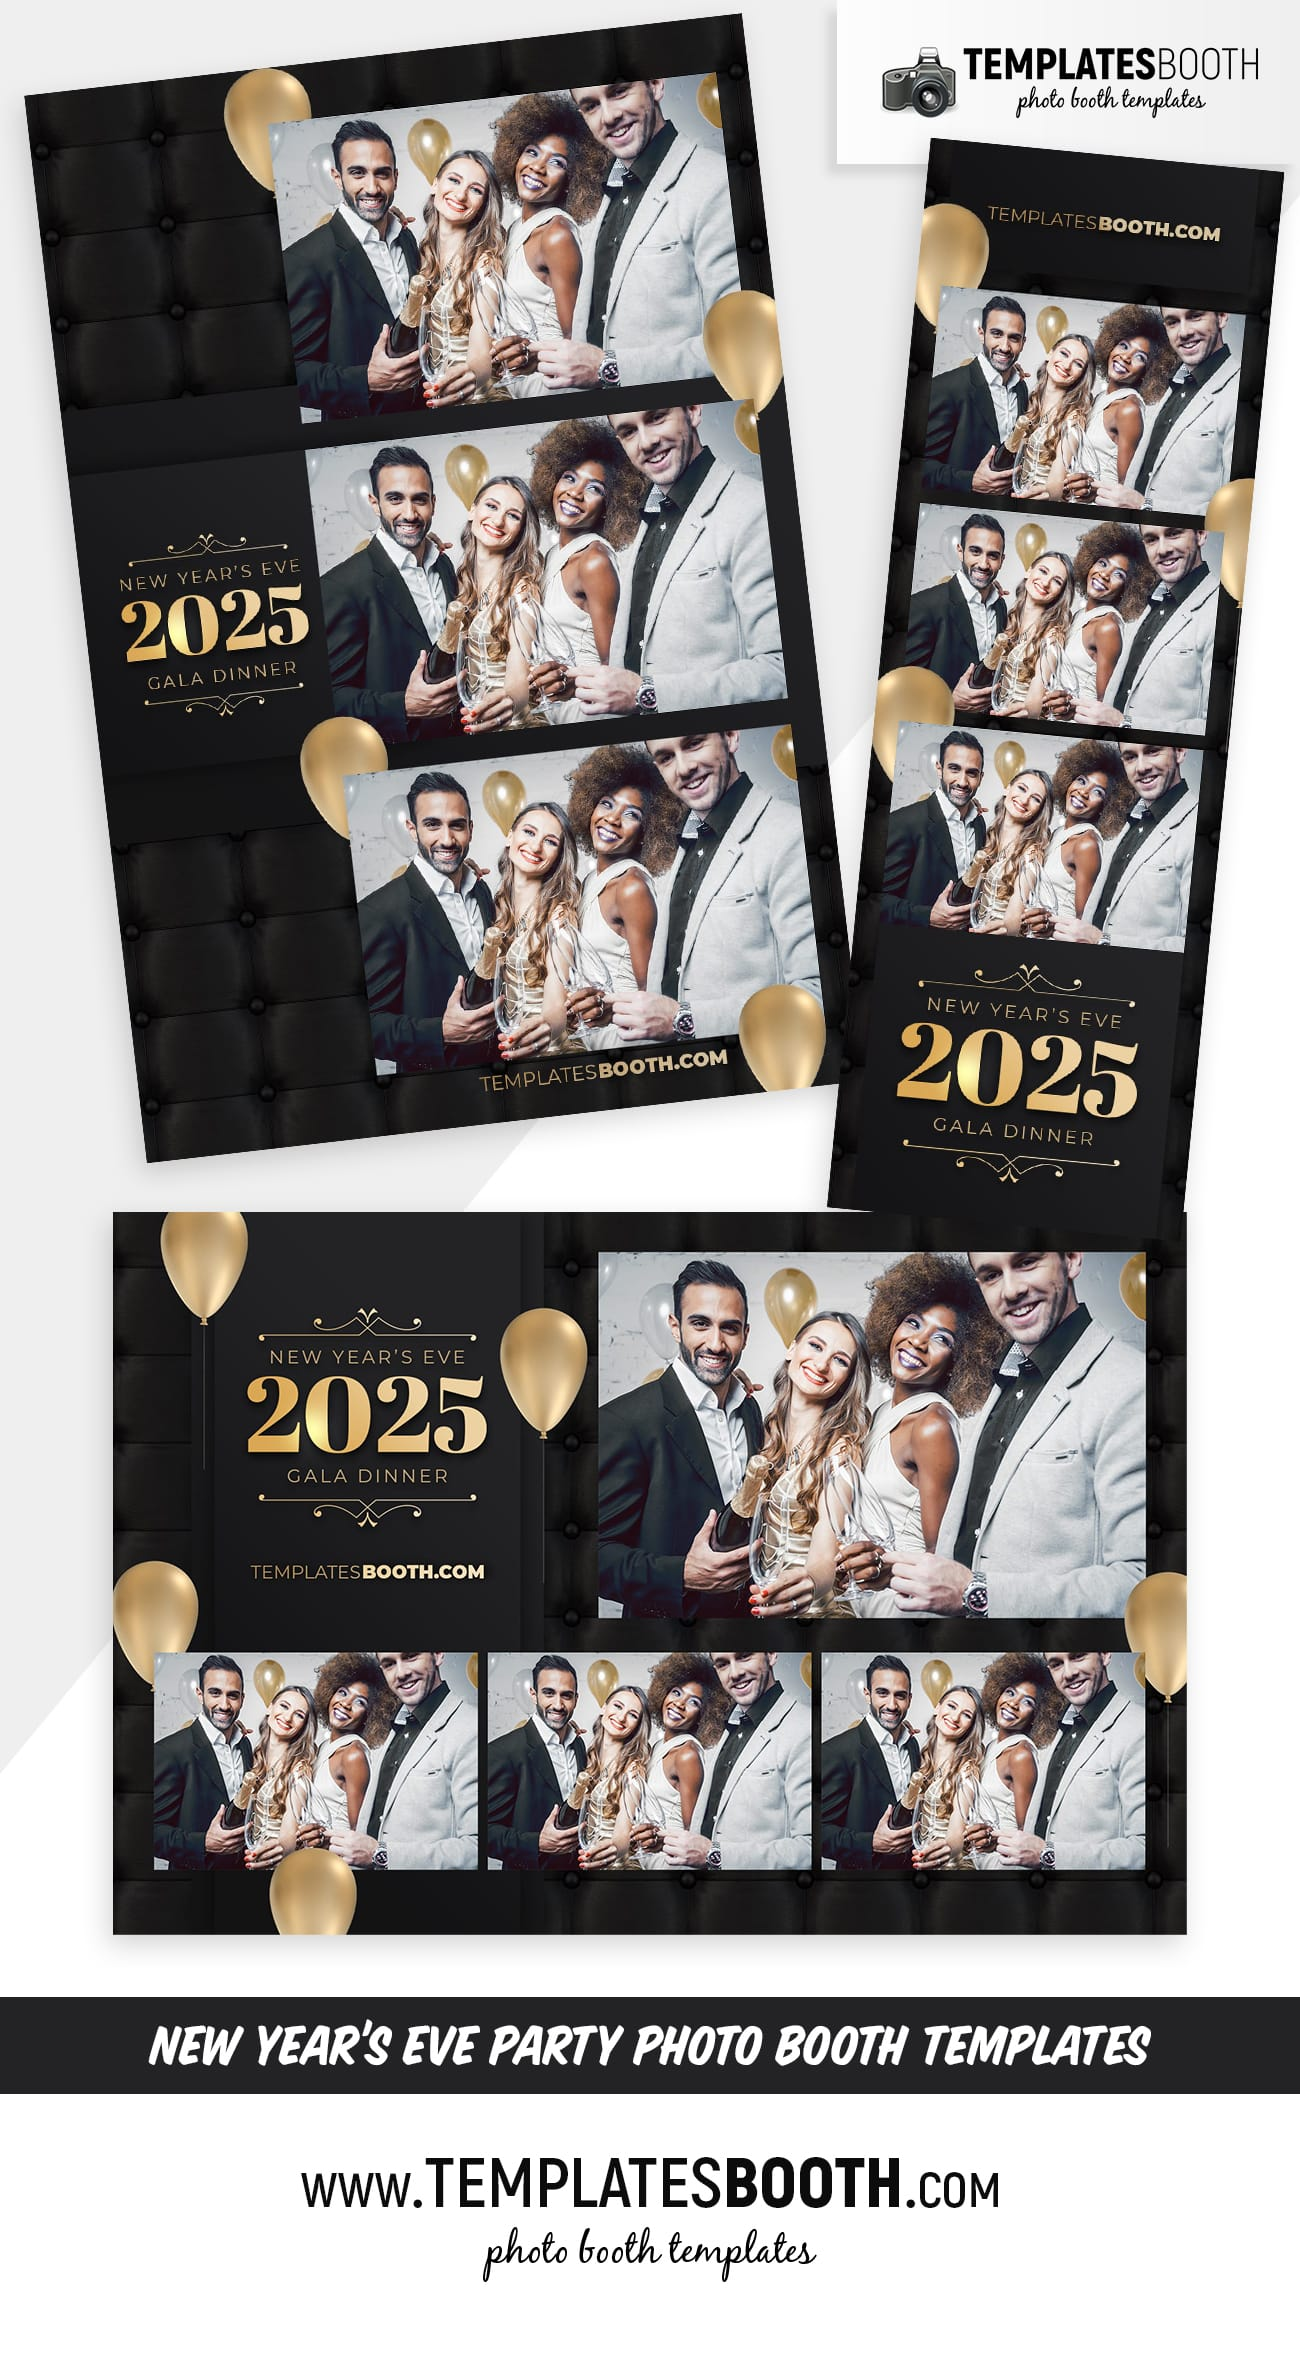 New Year's Eve Party Photo Booth Template (full preview)